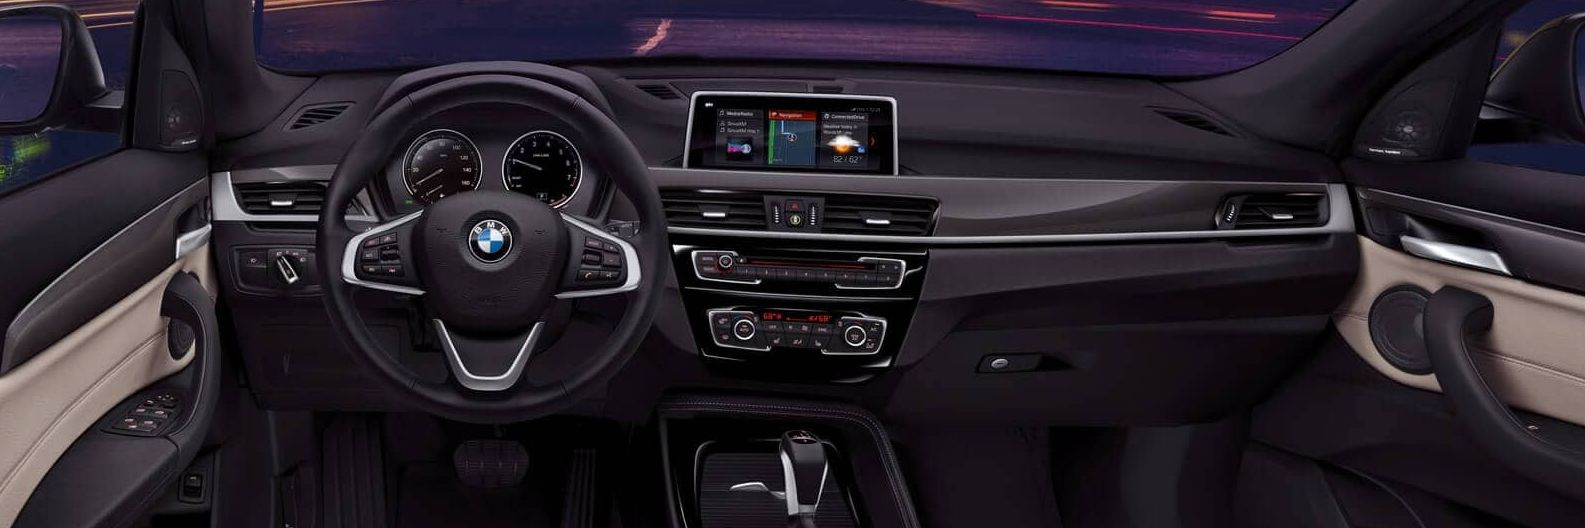 2019 BMW X1 Dashboard